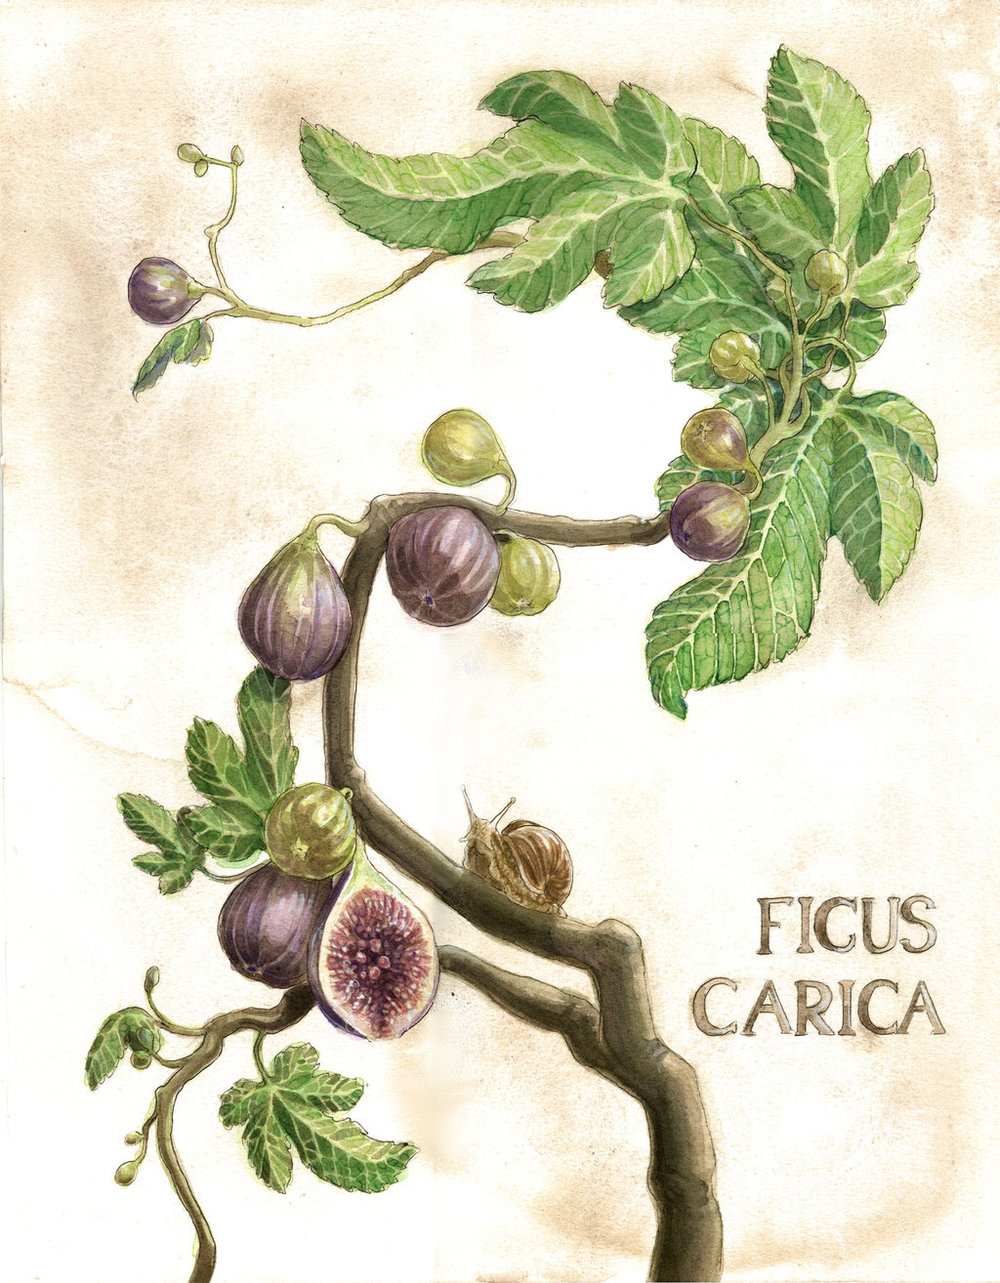 A botanical illustration of a fig tree.